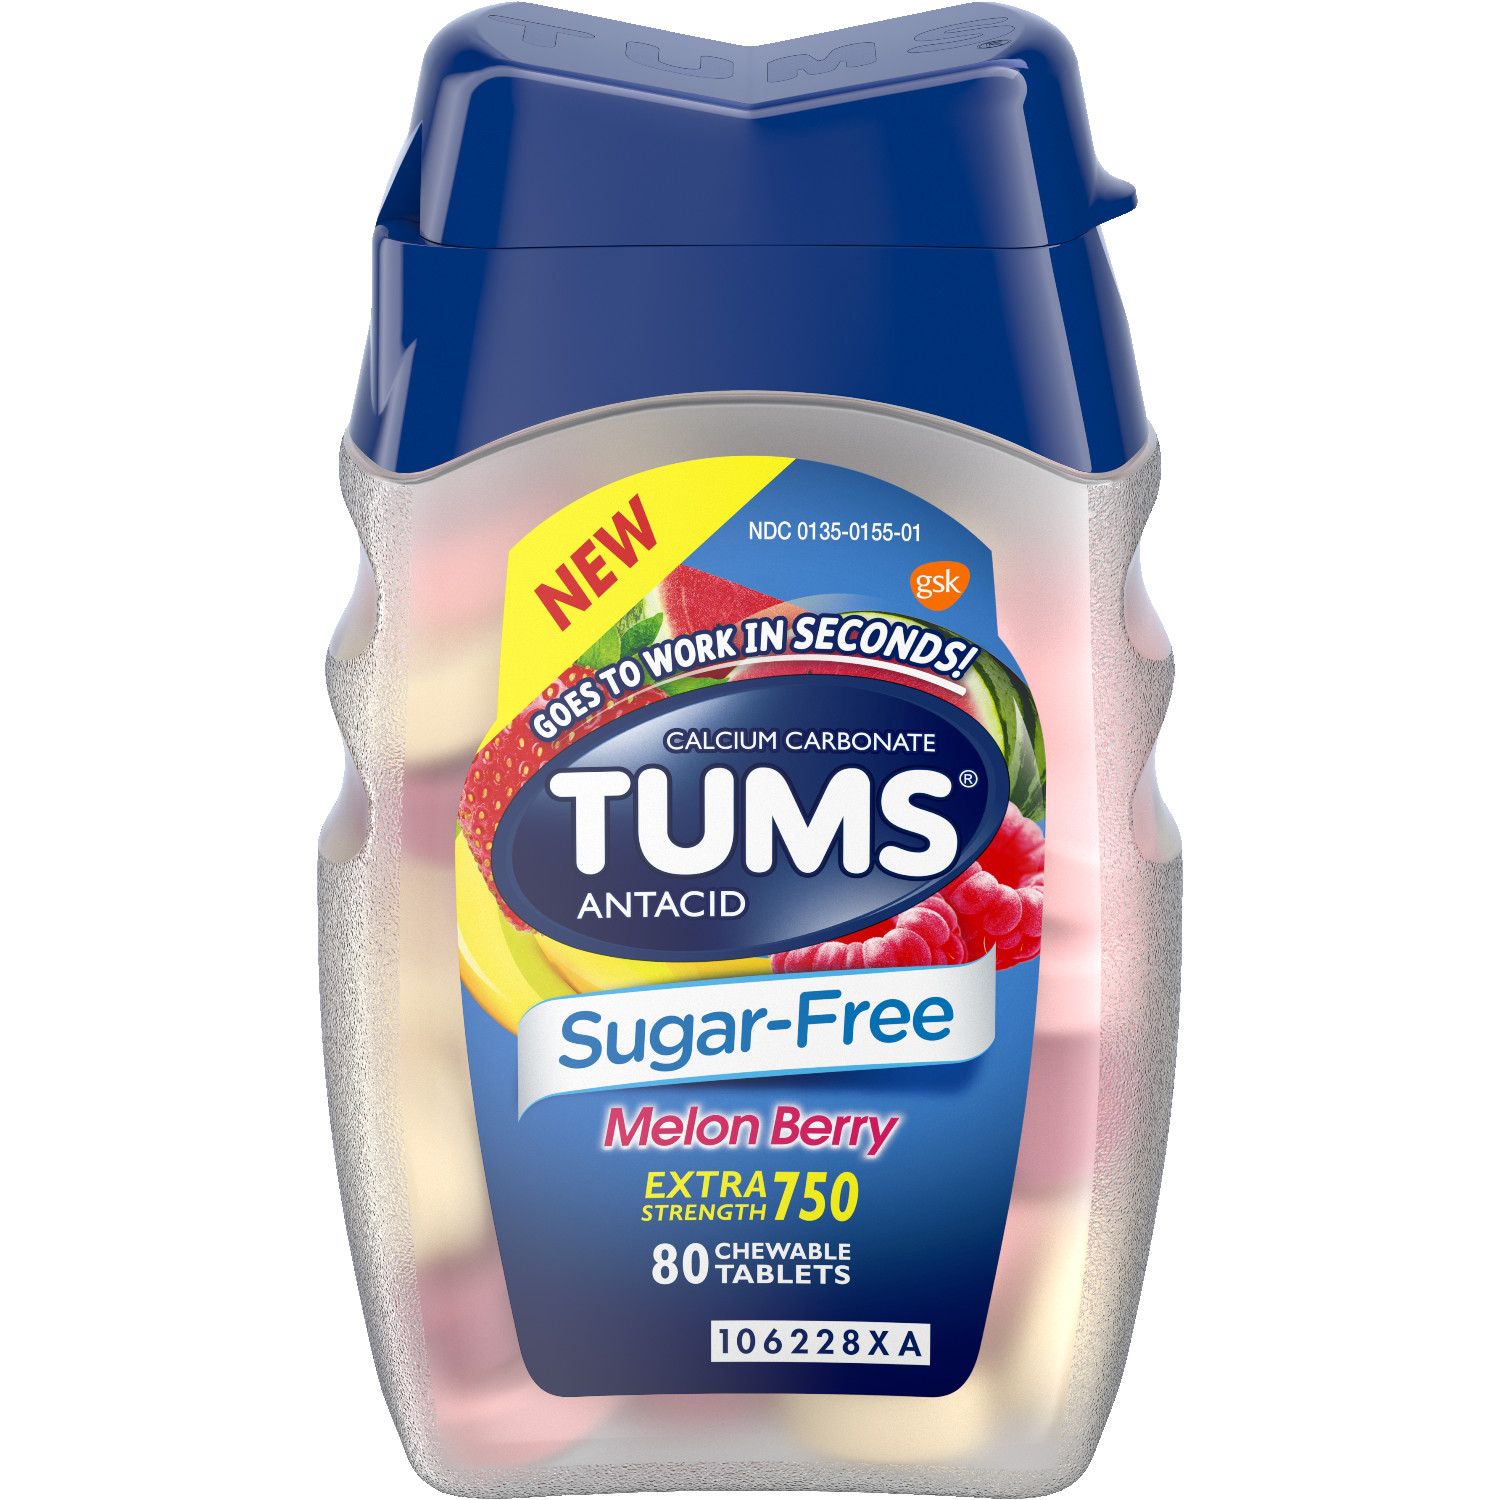 (2 Pack) Tums sugar-free antacid chewable tablets for heartburn relief, extra strength, melon berry, 80 table